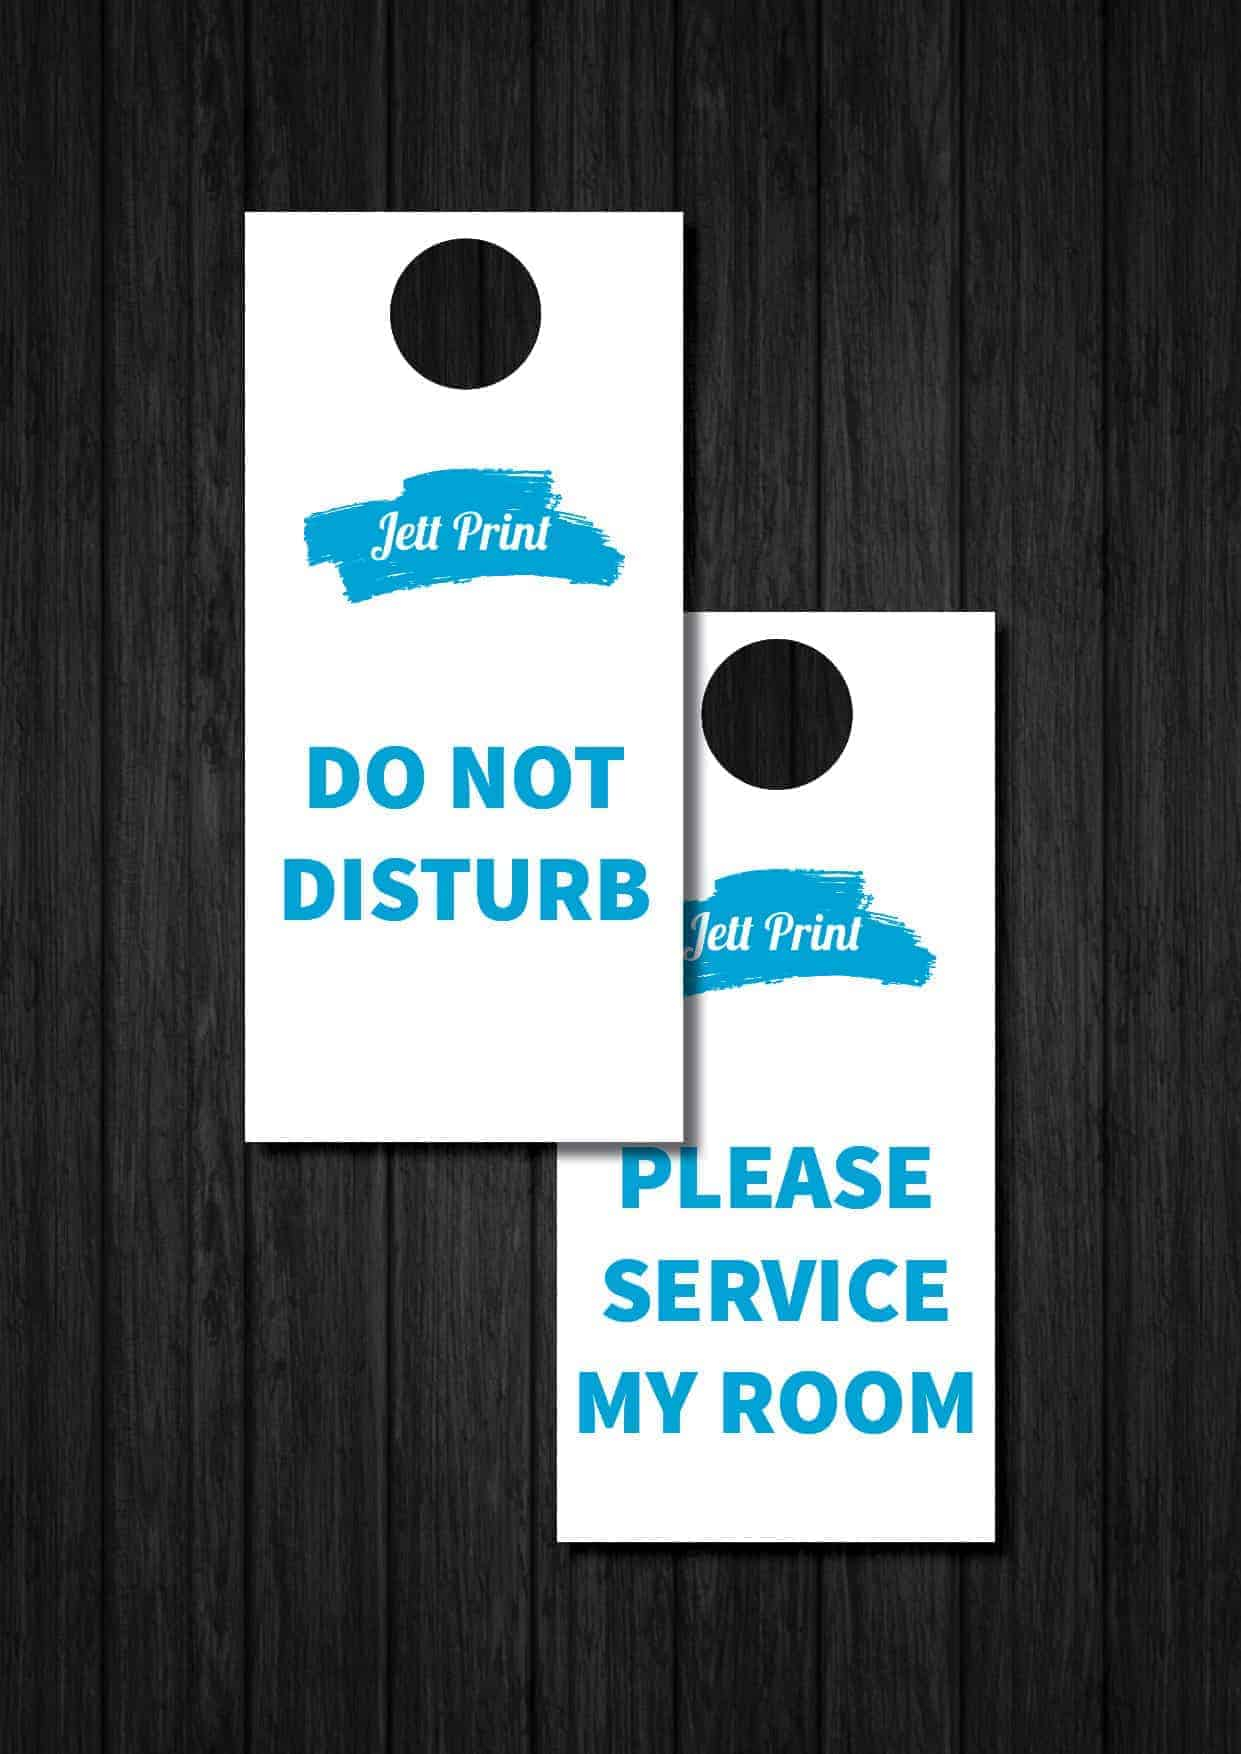 jett-print-custom-printed-door-hangers